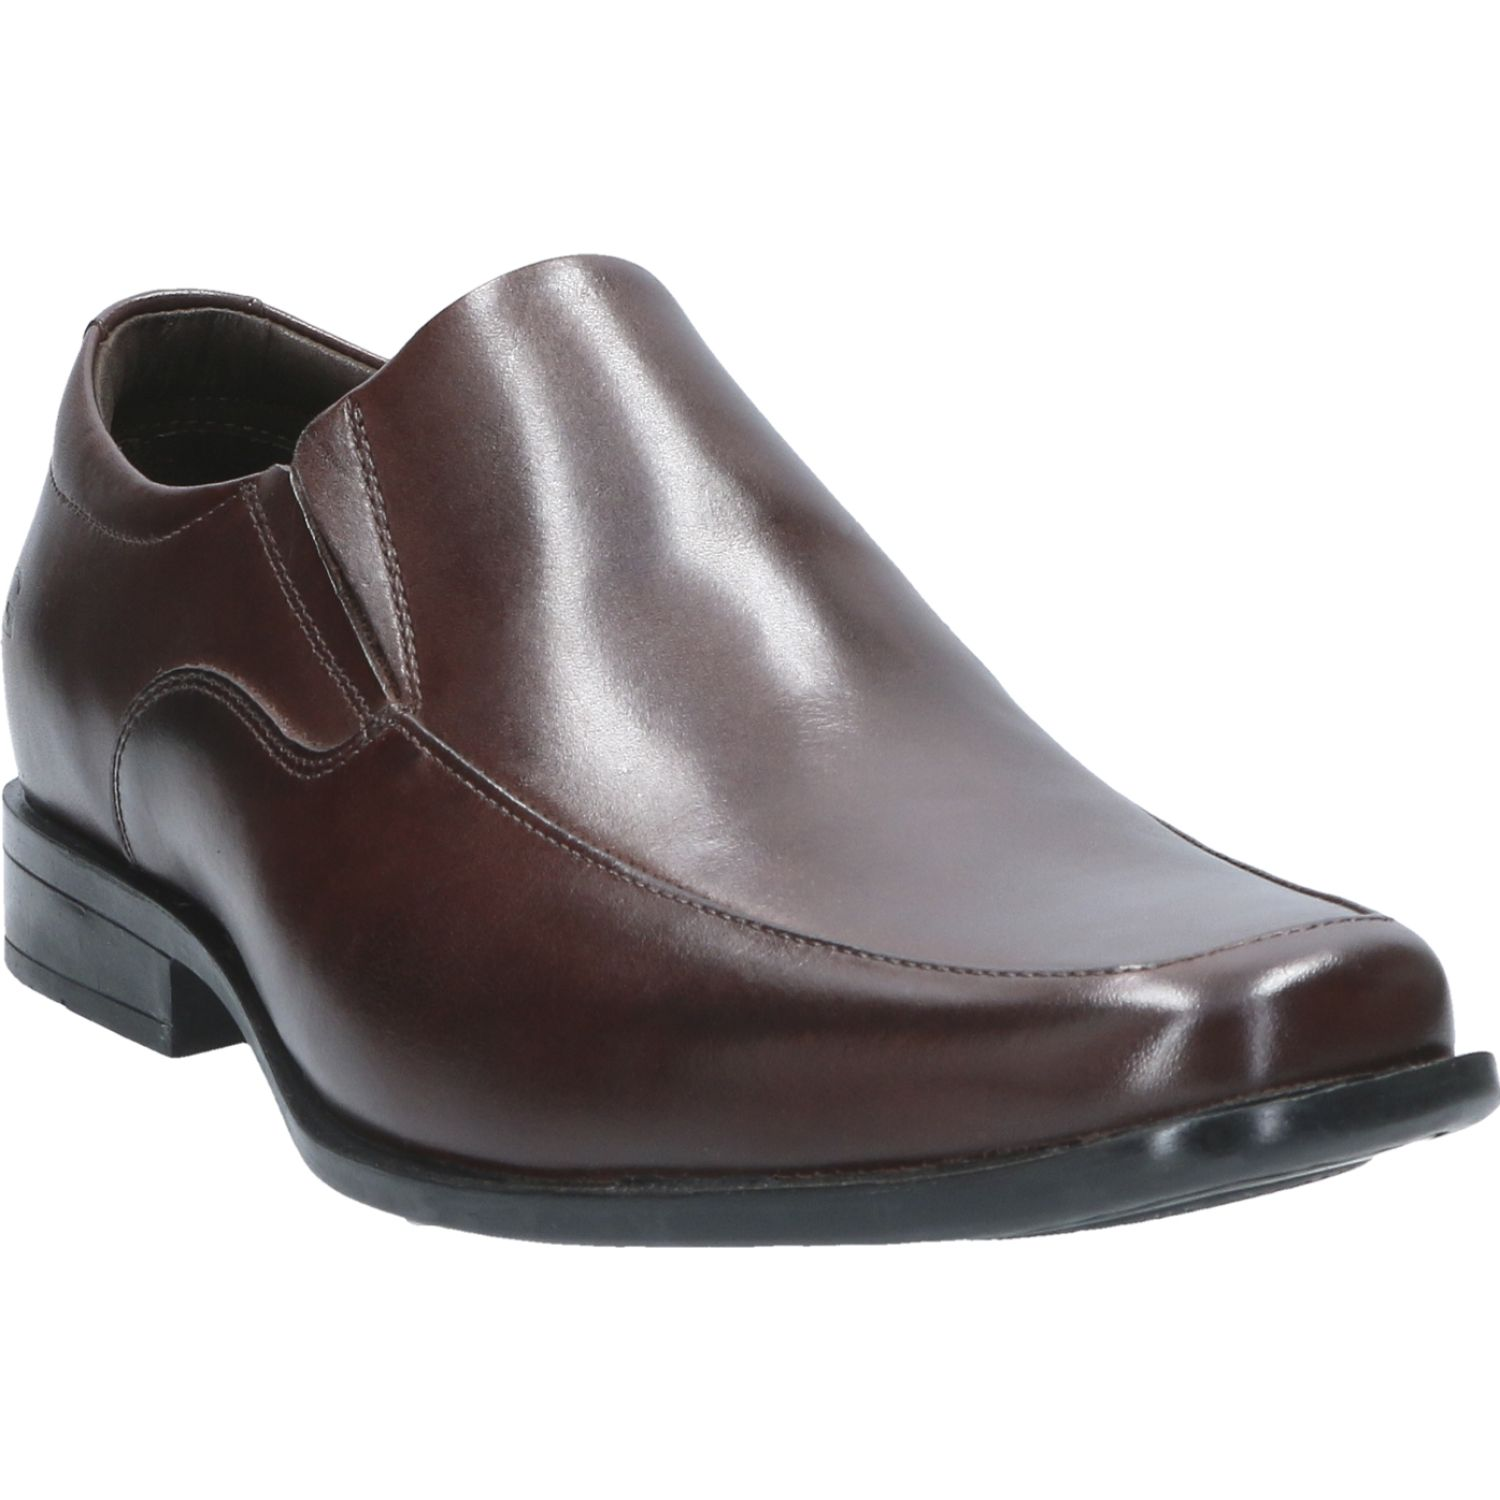 GUANTE Atlanta Chocolate Mocasines y Slip-Ons